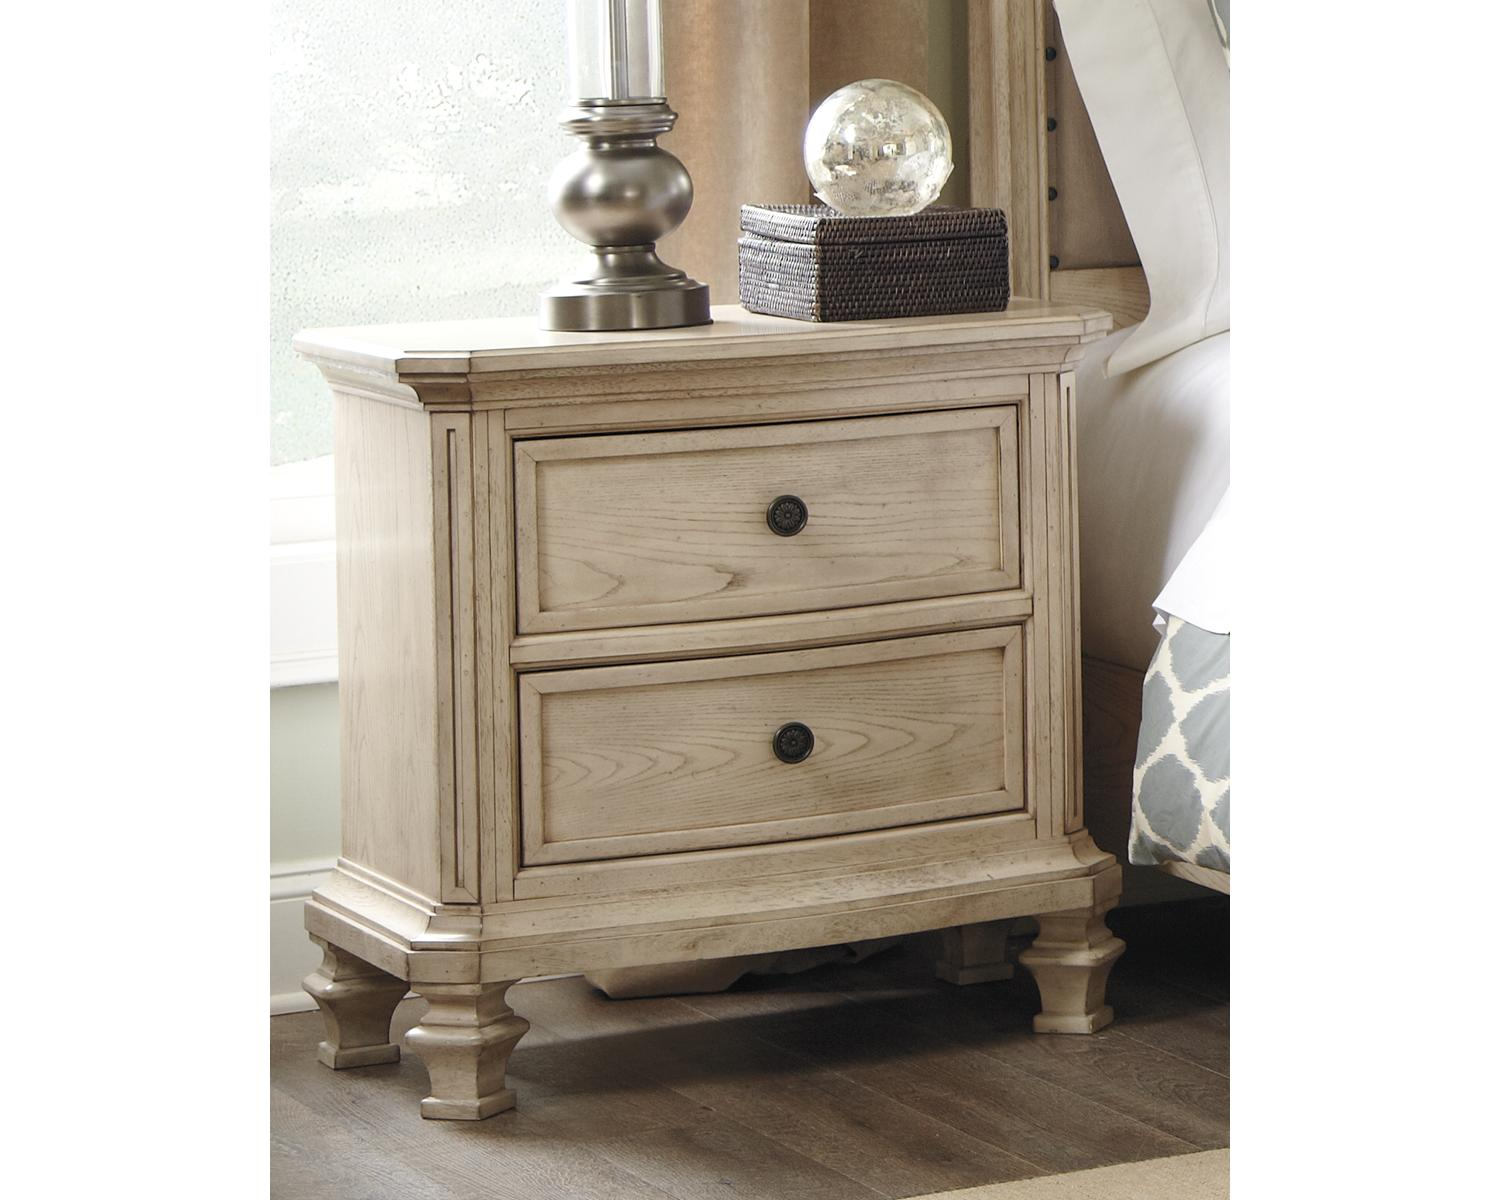 Signature Design by Ashley Furniture-Demarlos Nightstand-Casual Style-Parchment White